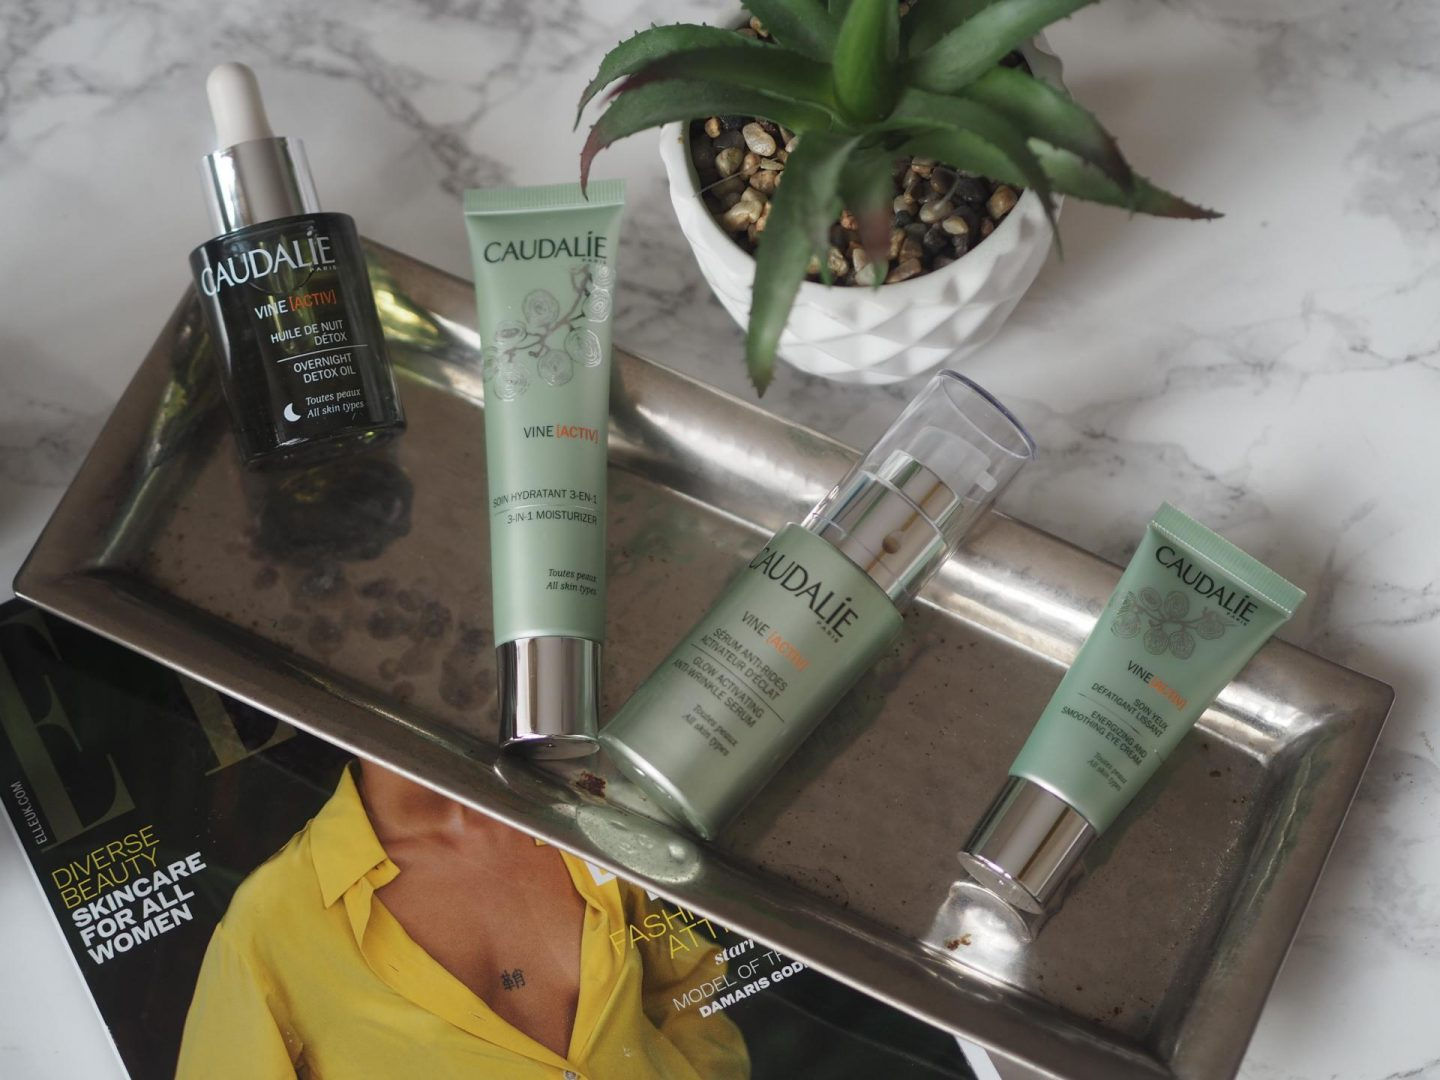 best green beauty products and Caudalie VineActiv range